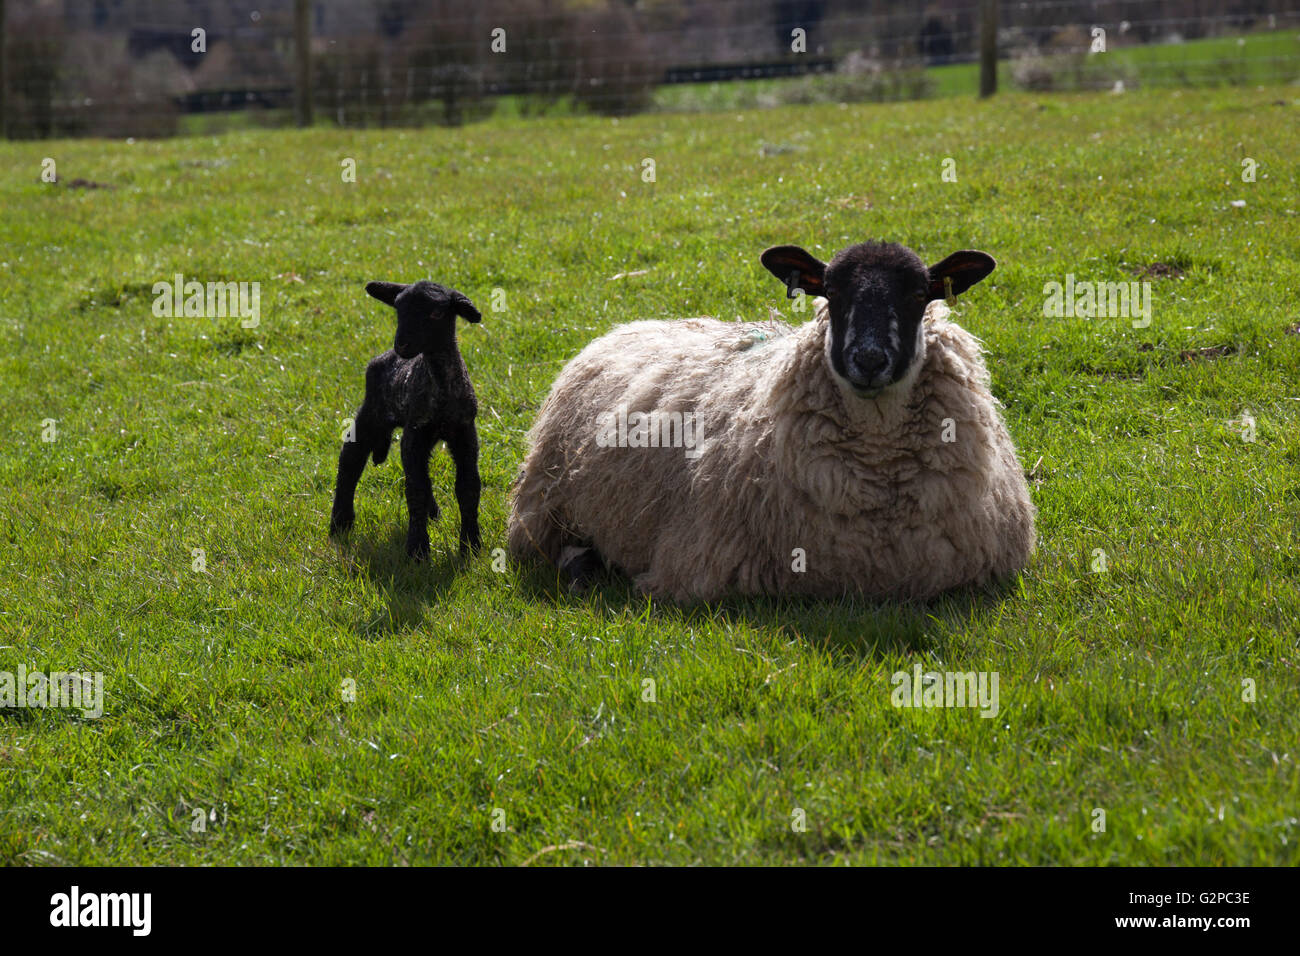 Ewe and lamb, Chipping Campden, Cotswolds, Gloucestershire, England, United Kingdom, Europe - Stock Image